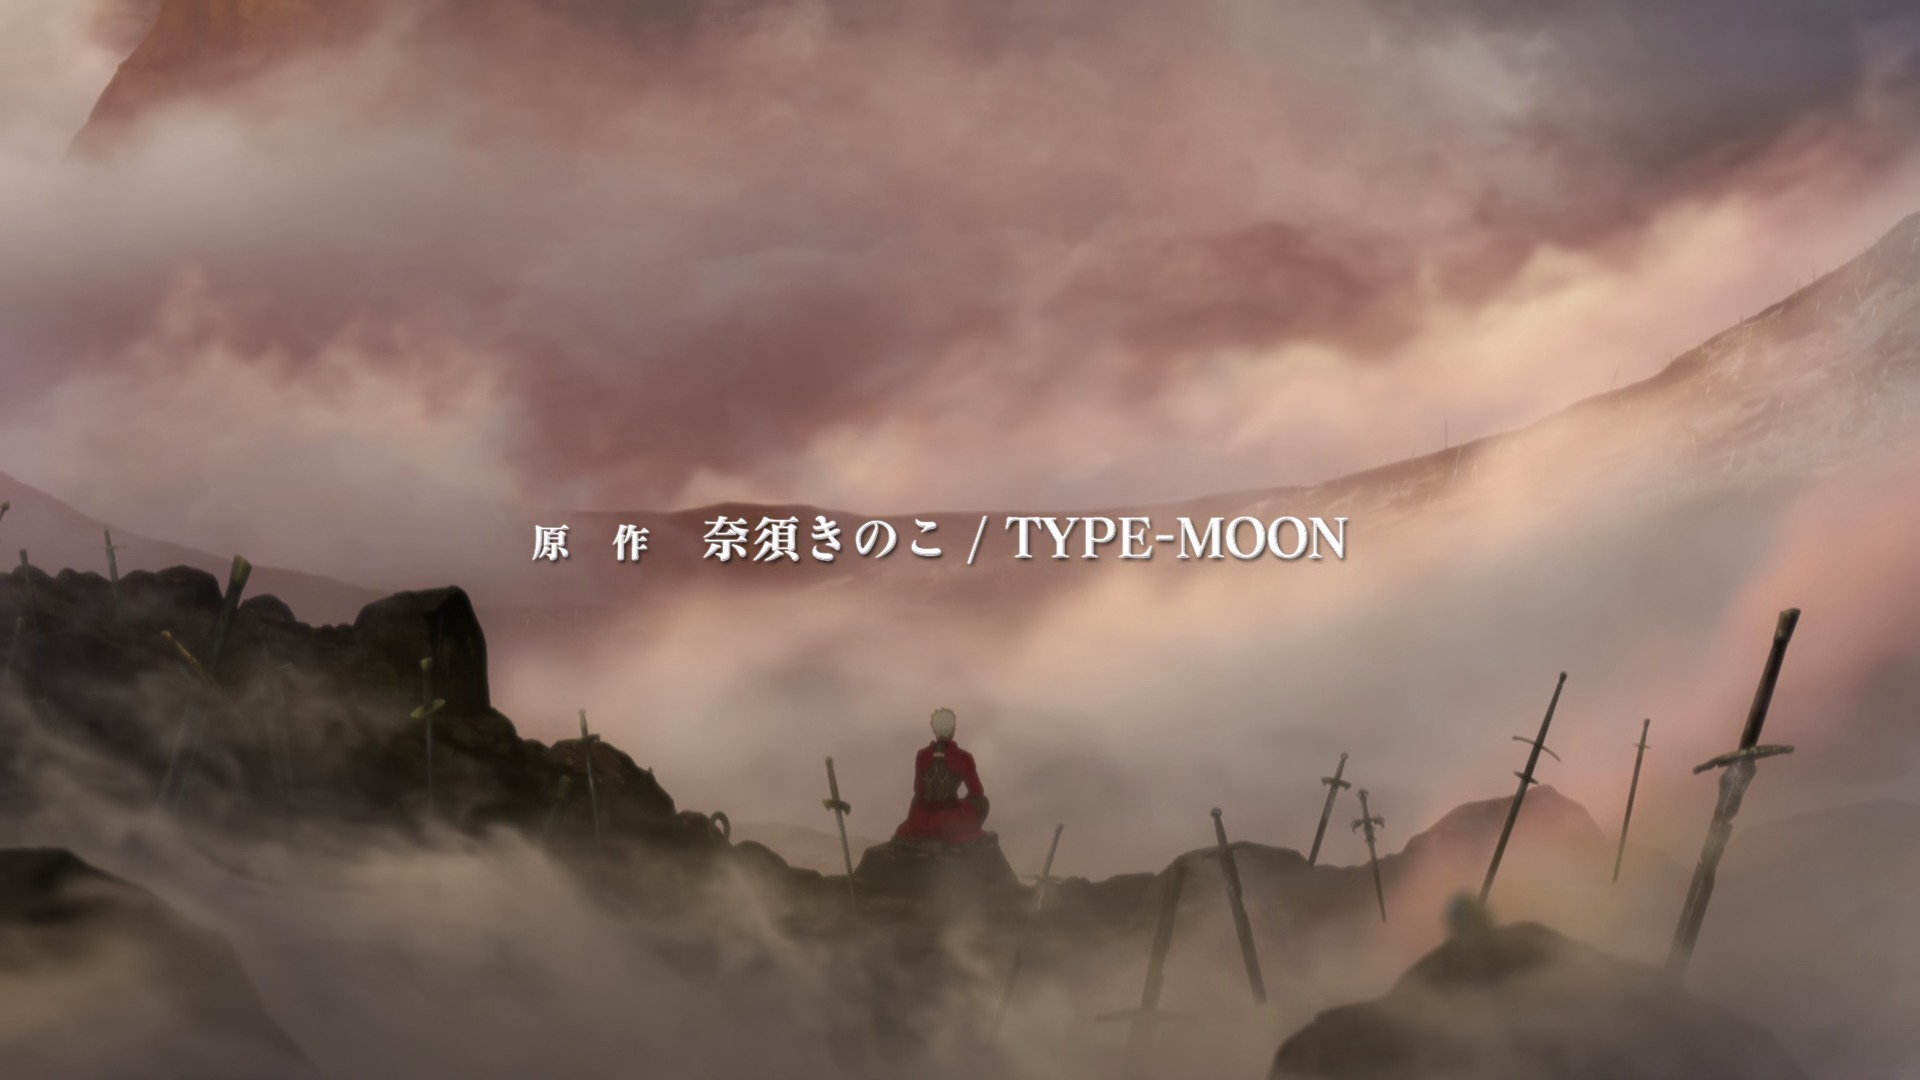 Fate/stay night 命运之夜 UBW Unlimited Blade Works 第18集 01分30秒